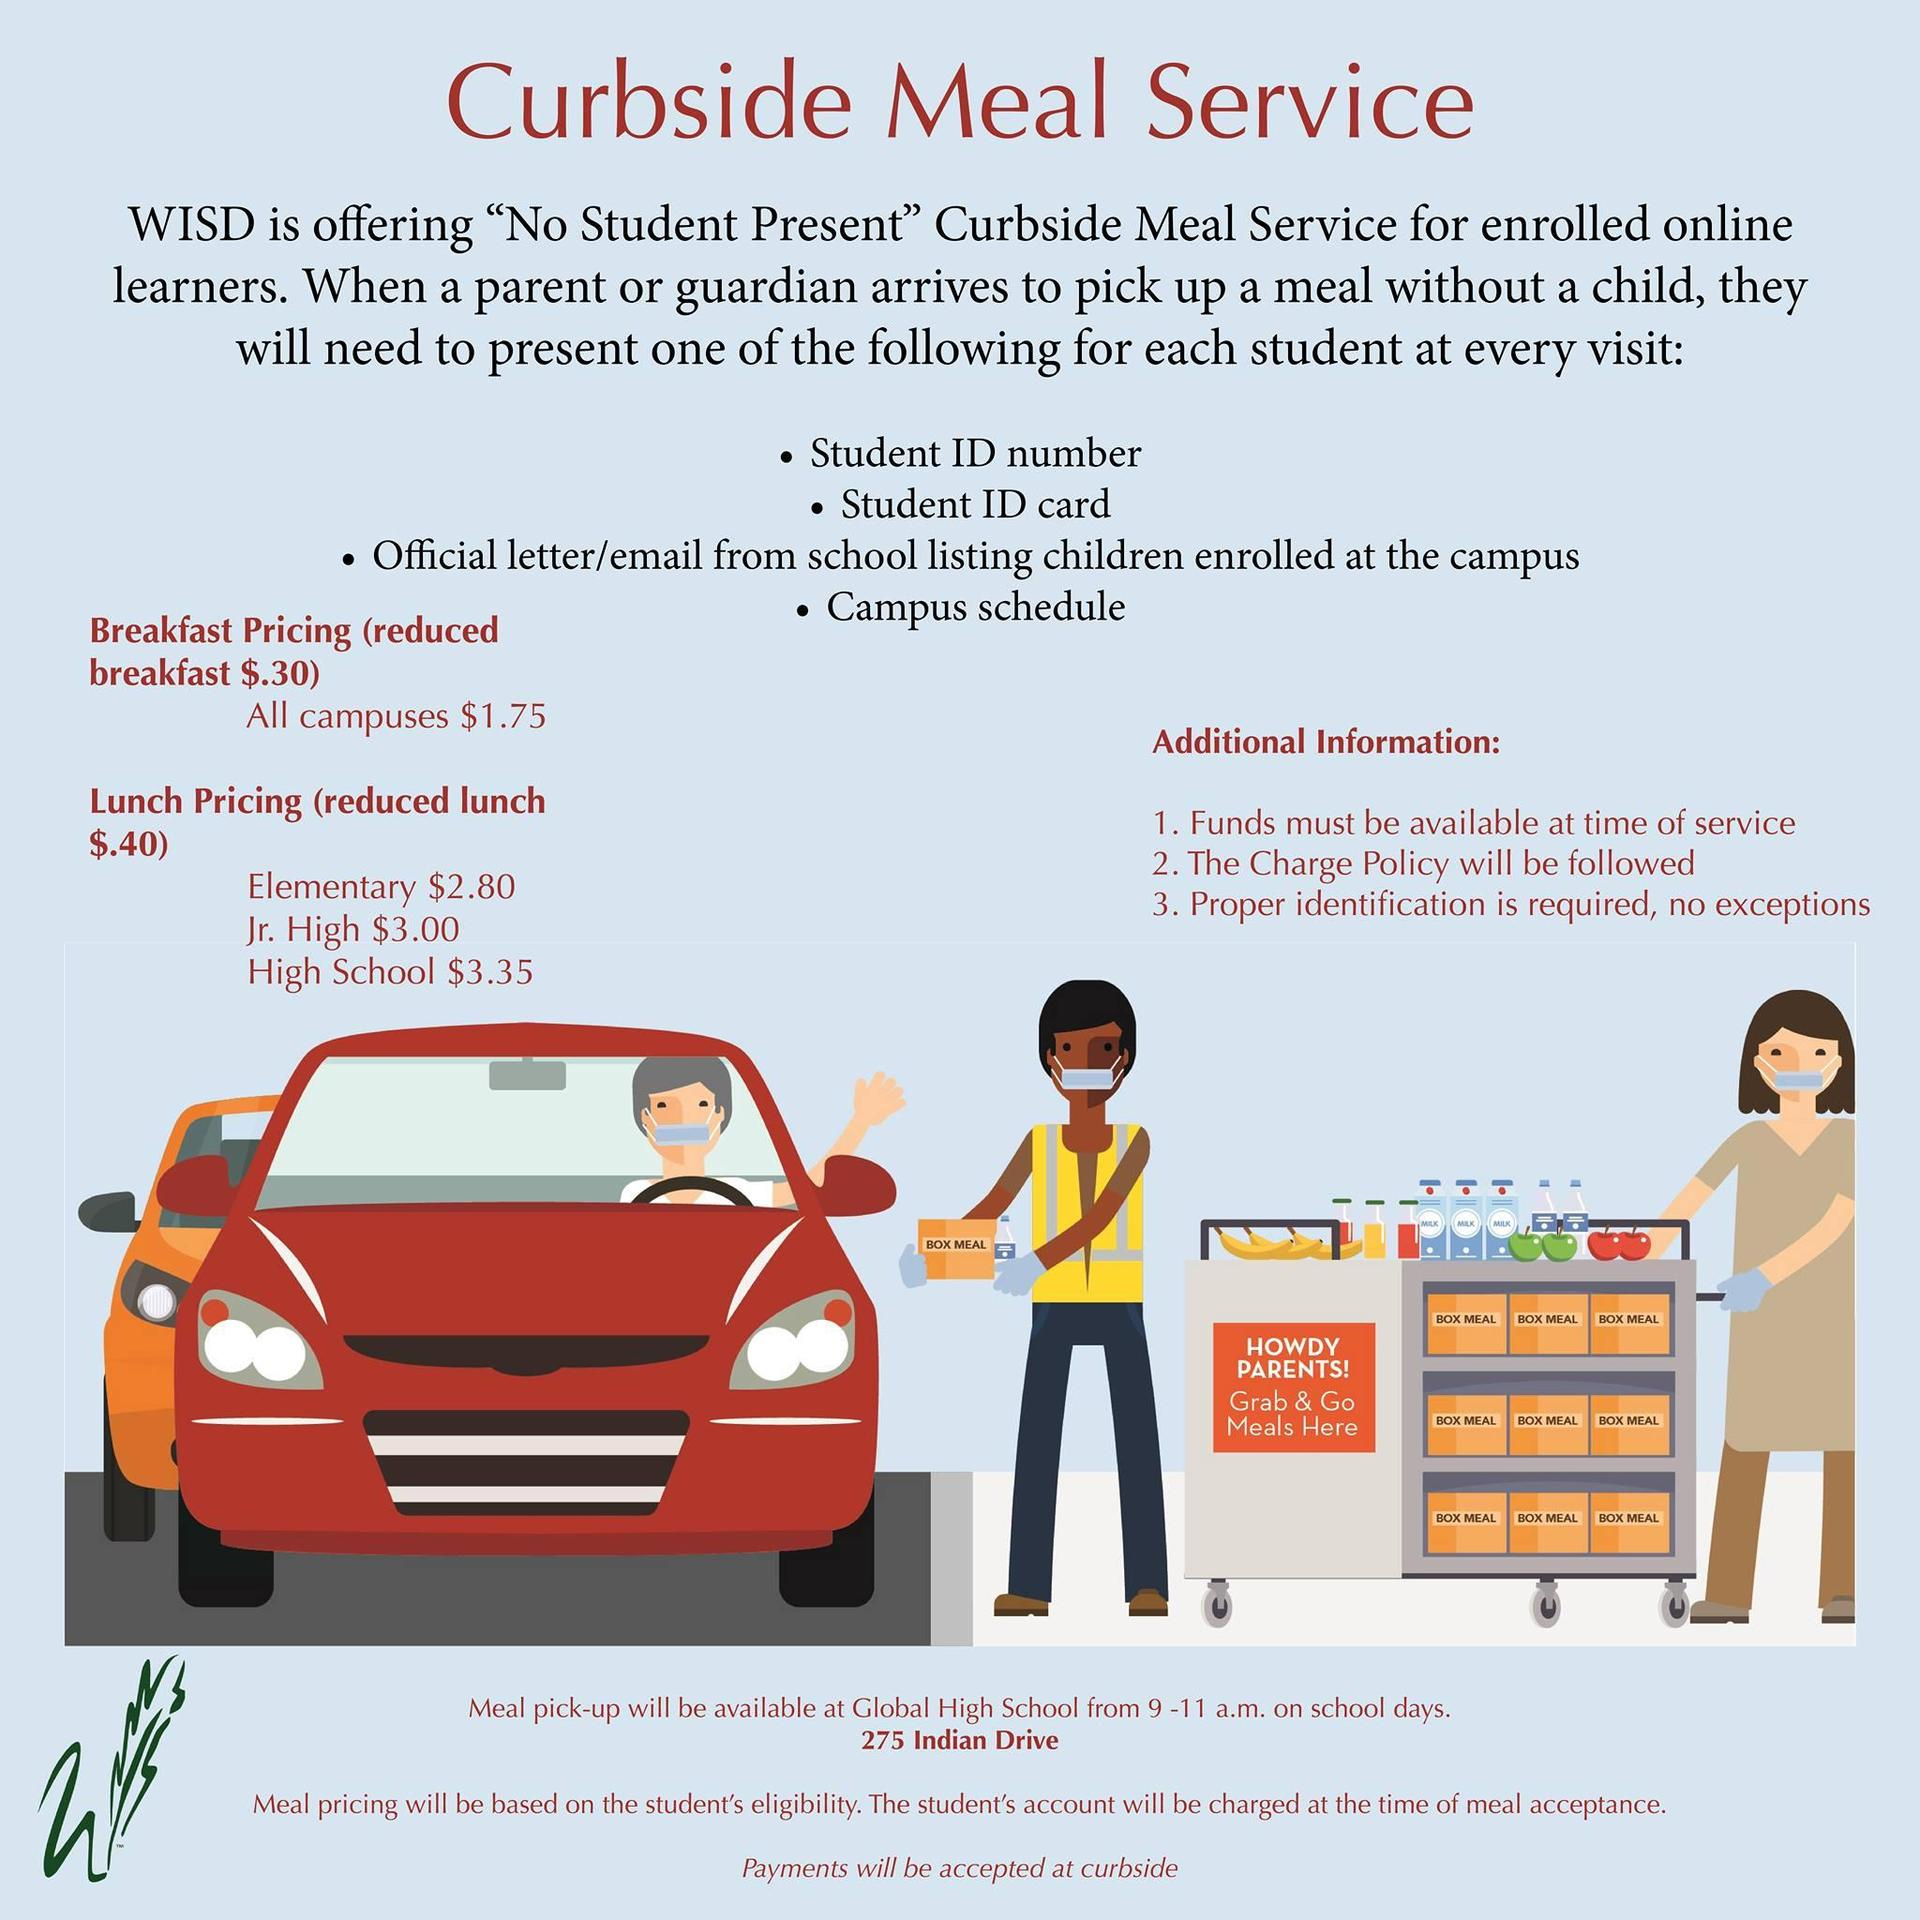 curbside meal service available 9-11 on school days at Global High School